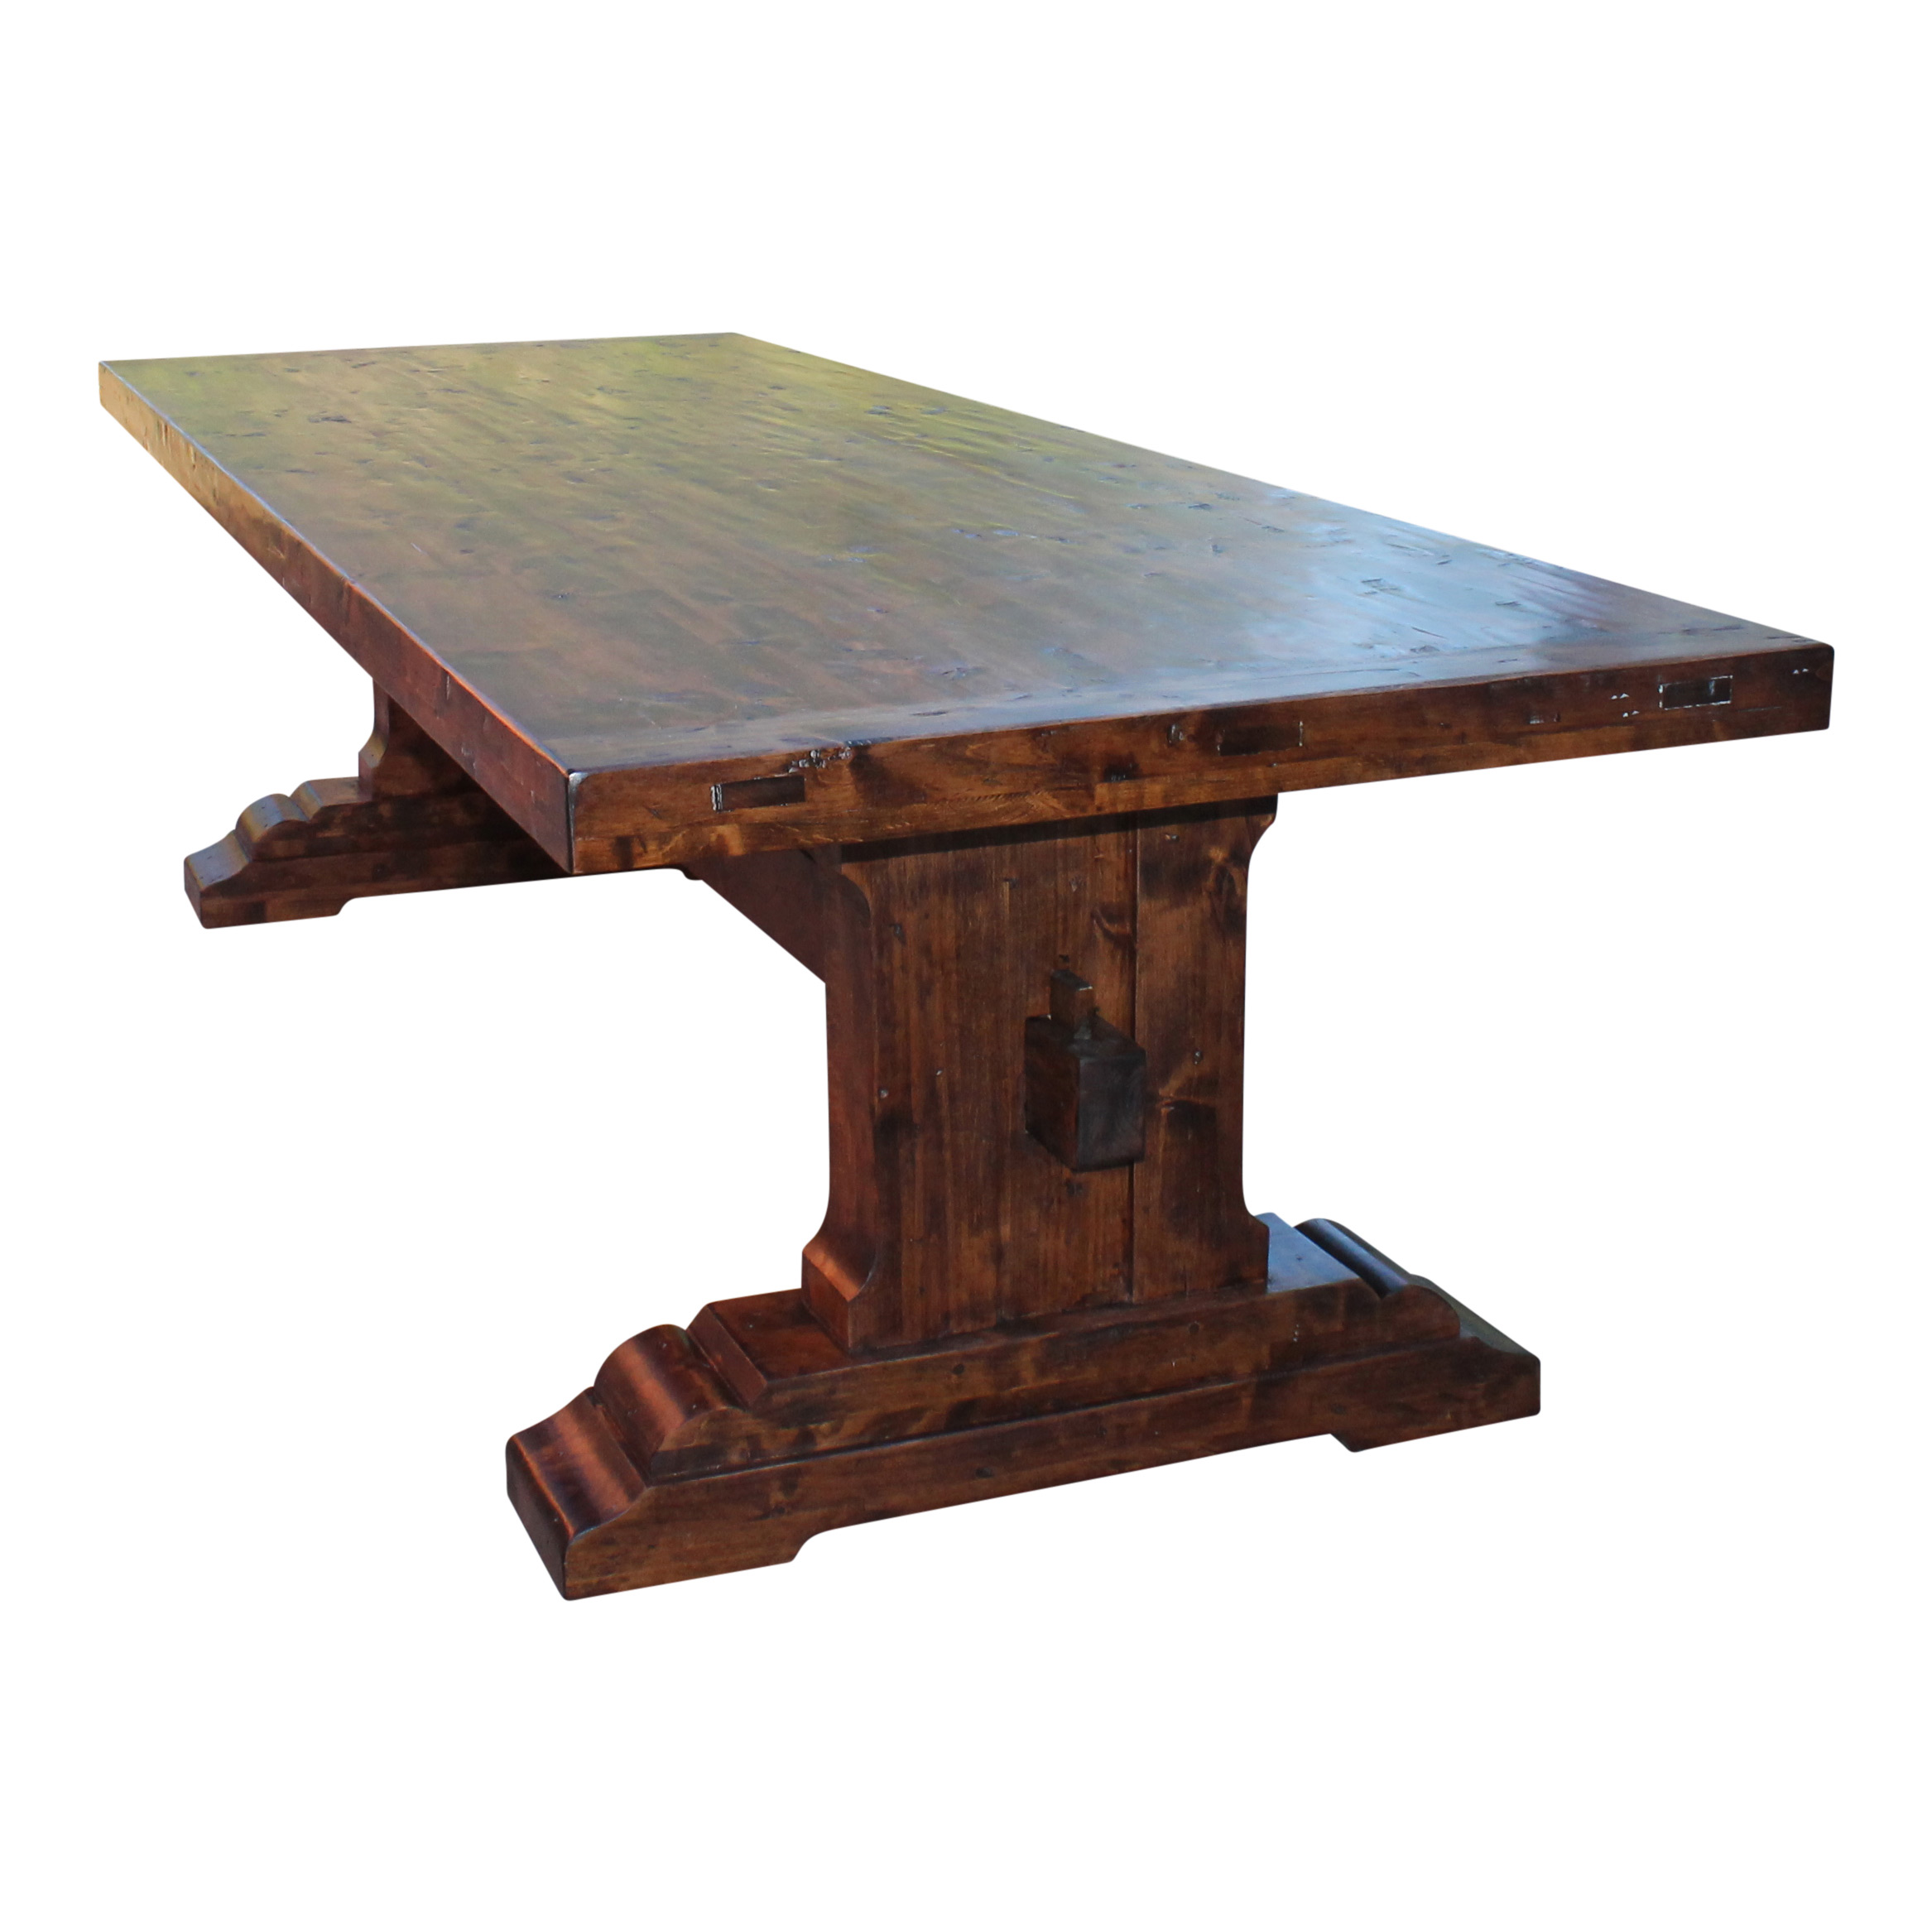 Alder Trestle Base Table Water Street Antiques : IMG9259 from www.waterstreetantiques.com size 2334 x 2334 jpeg 406kB